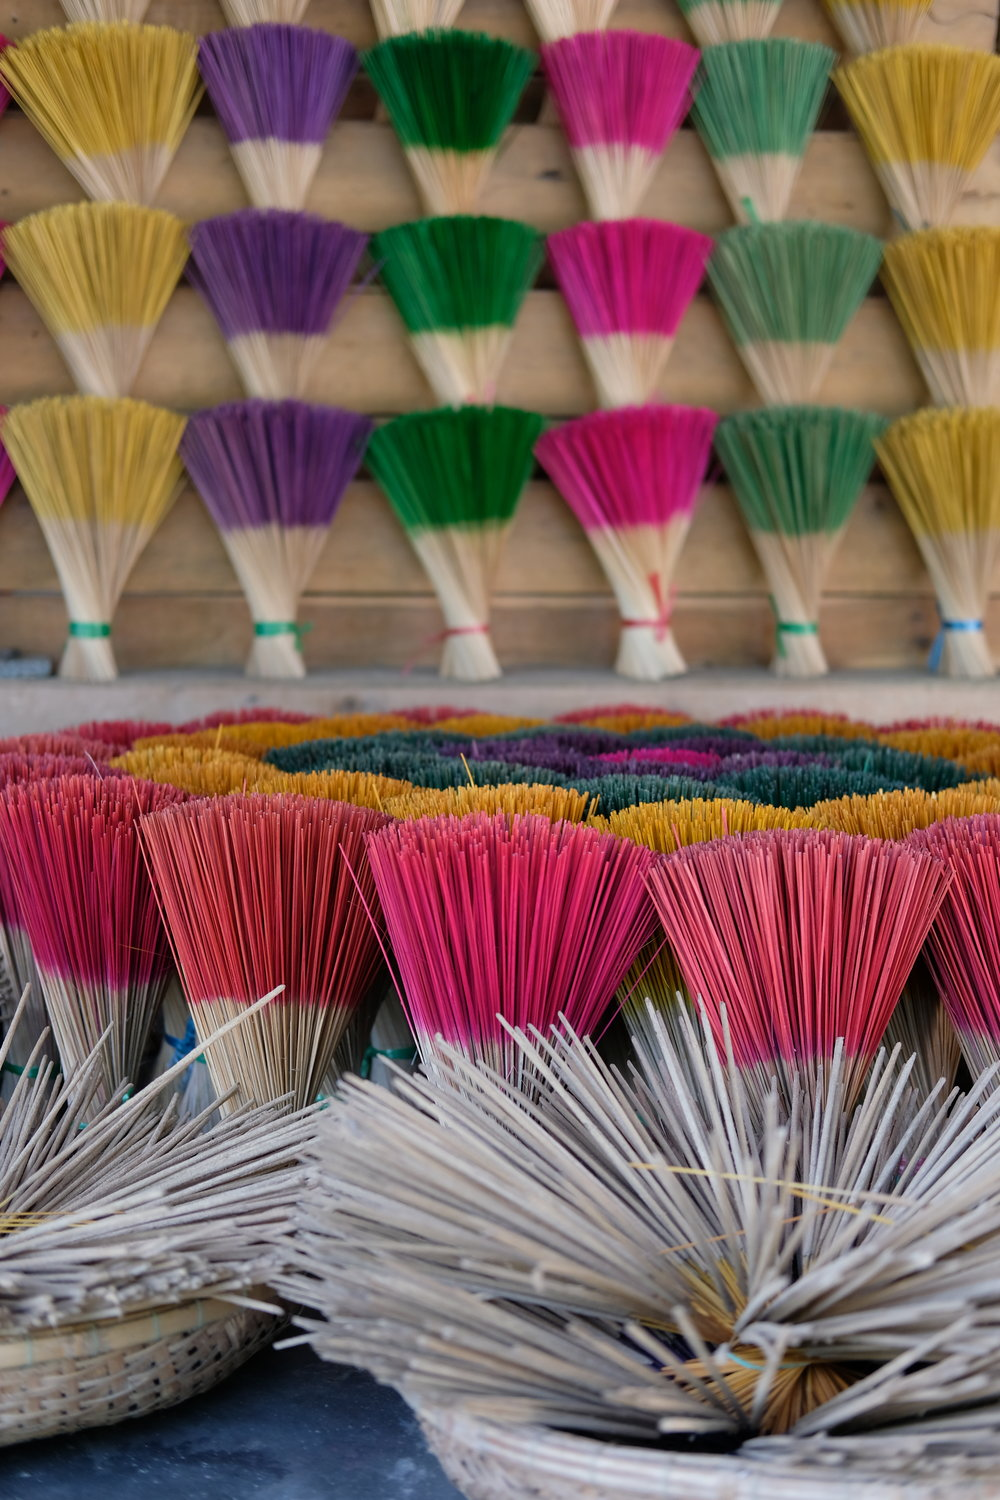 Just before Bunker Hill there is an area where they make fragrant and colorful incense.